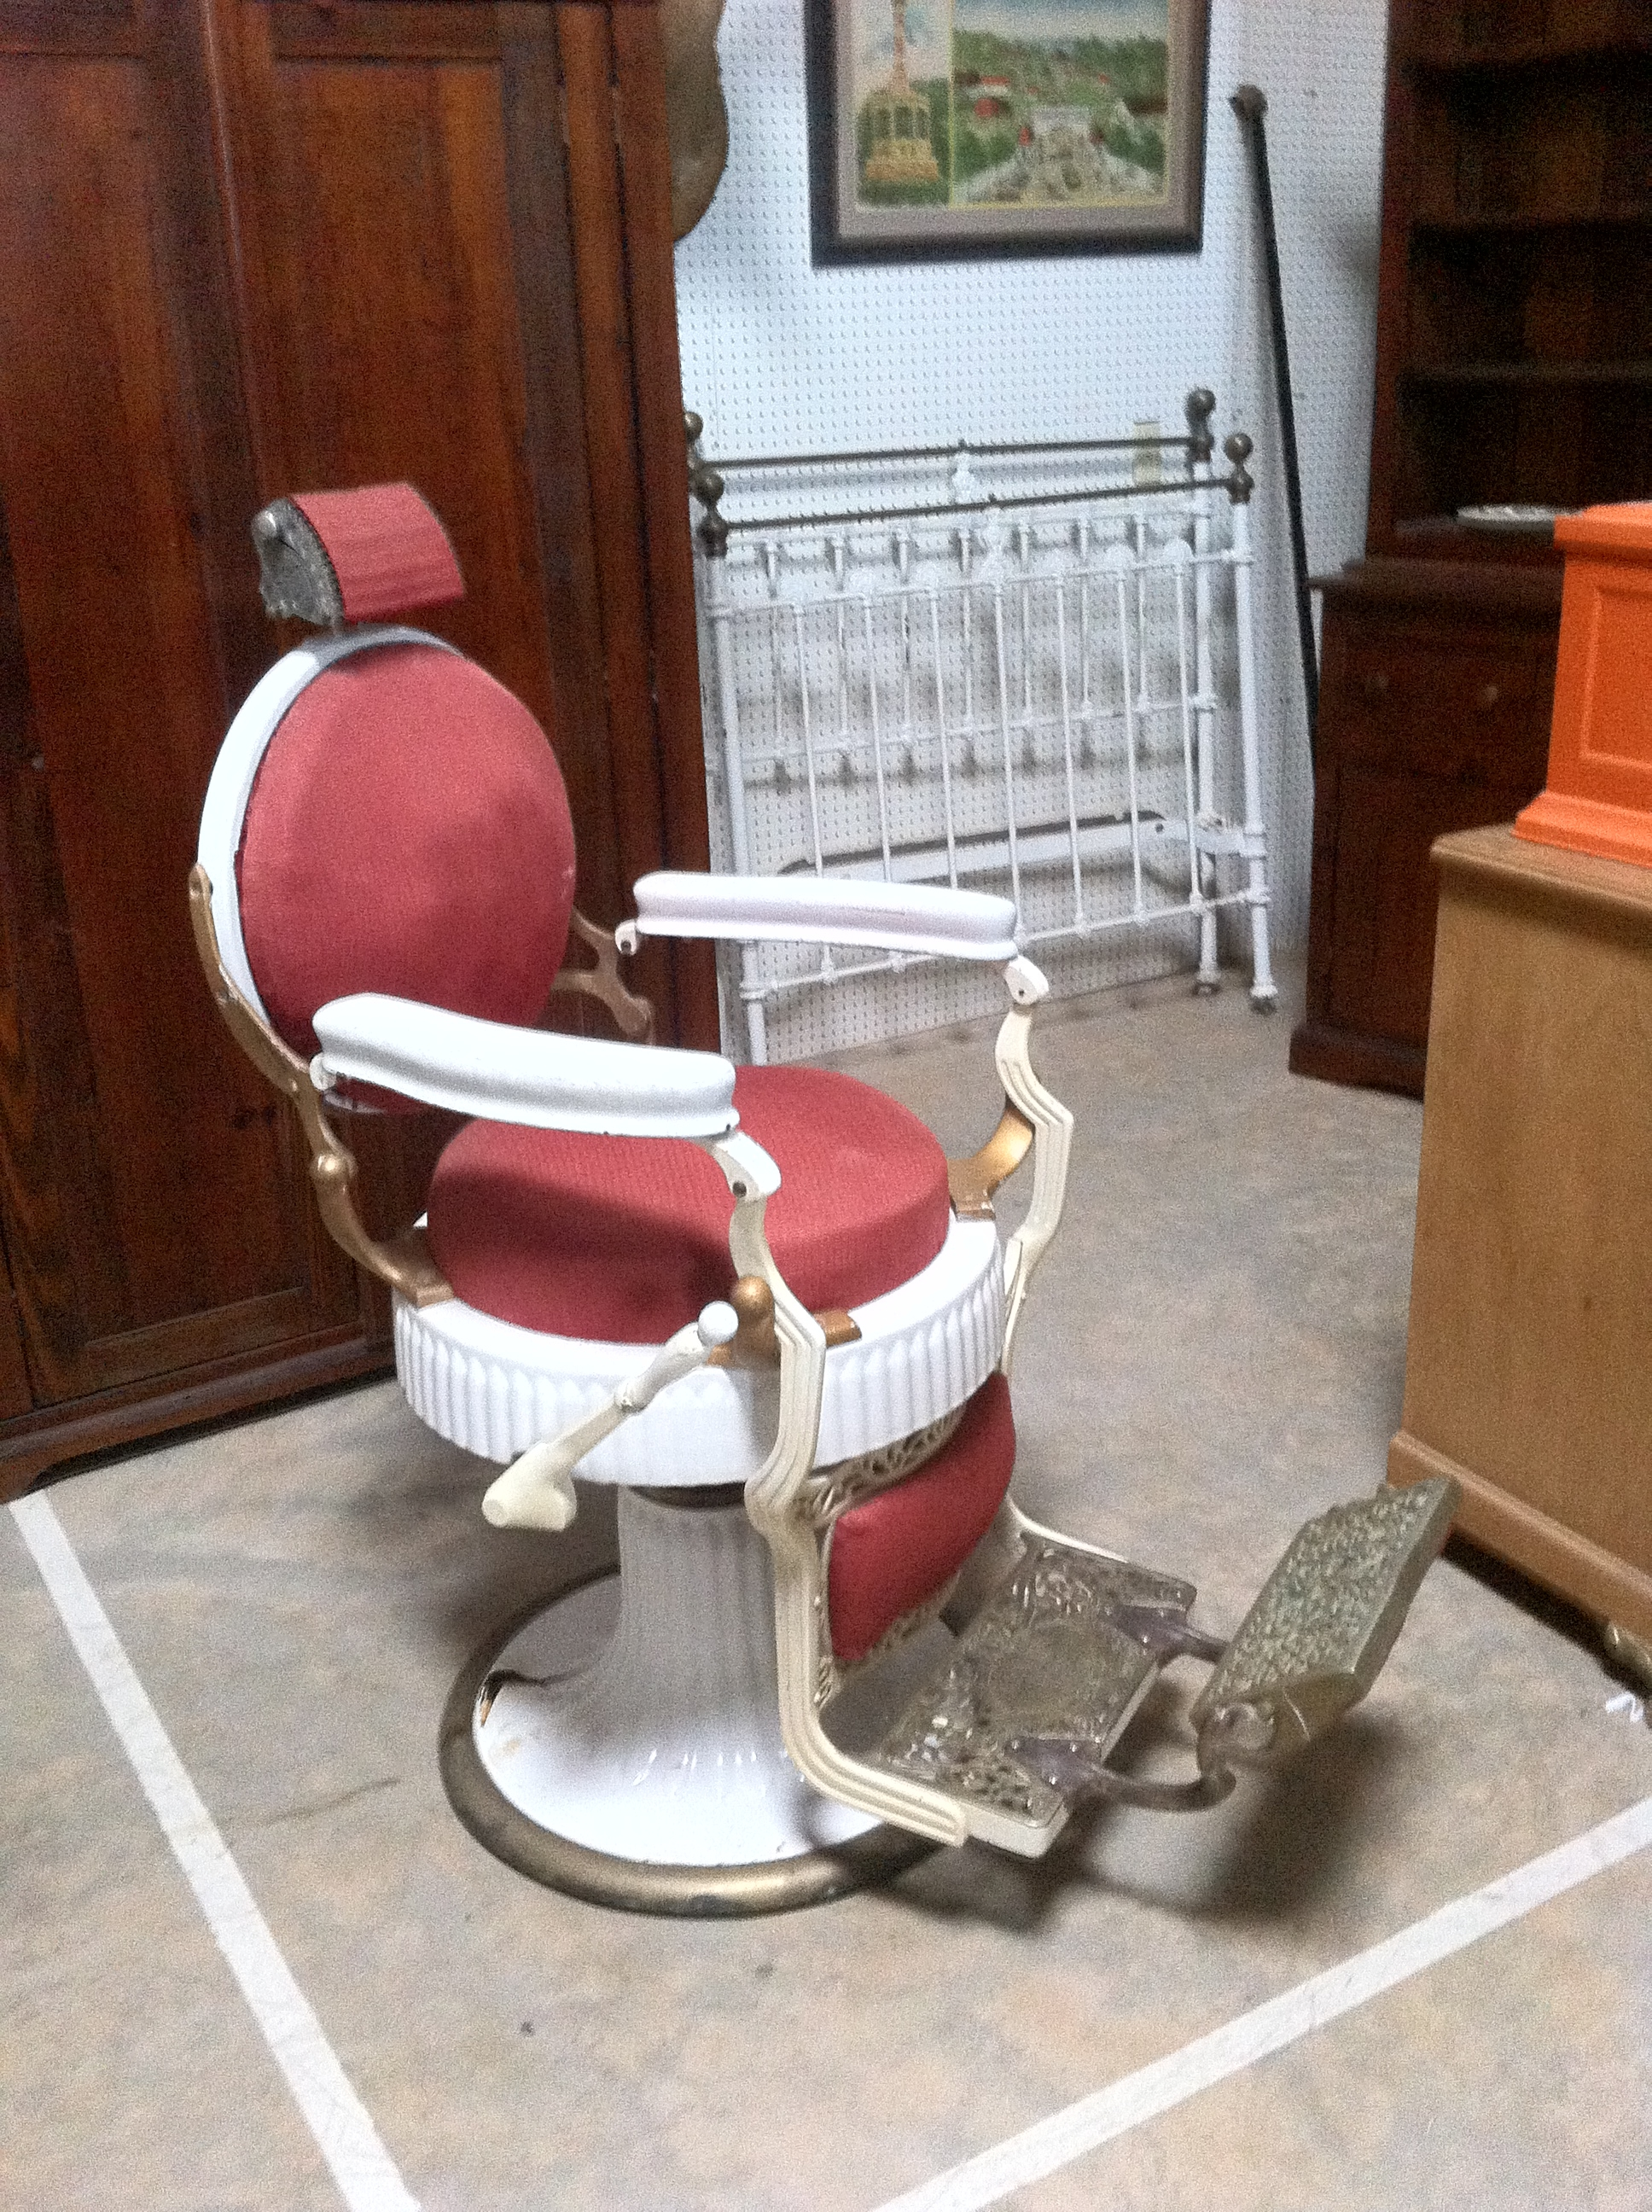 Cool barber chairs for sale for salon furniture with cheap barber chairs for sale